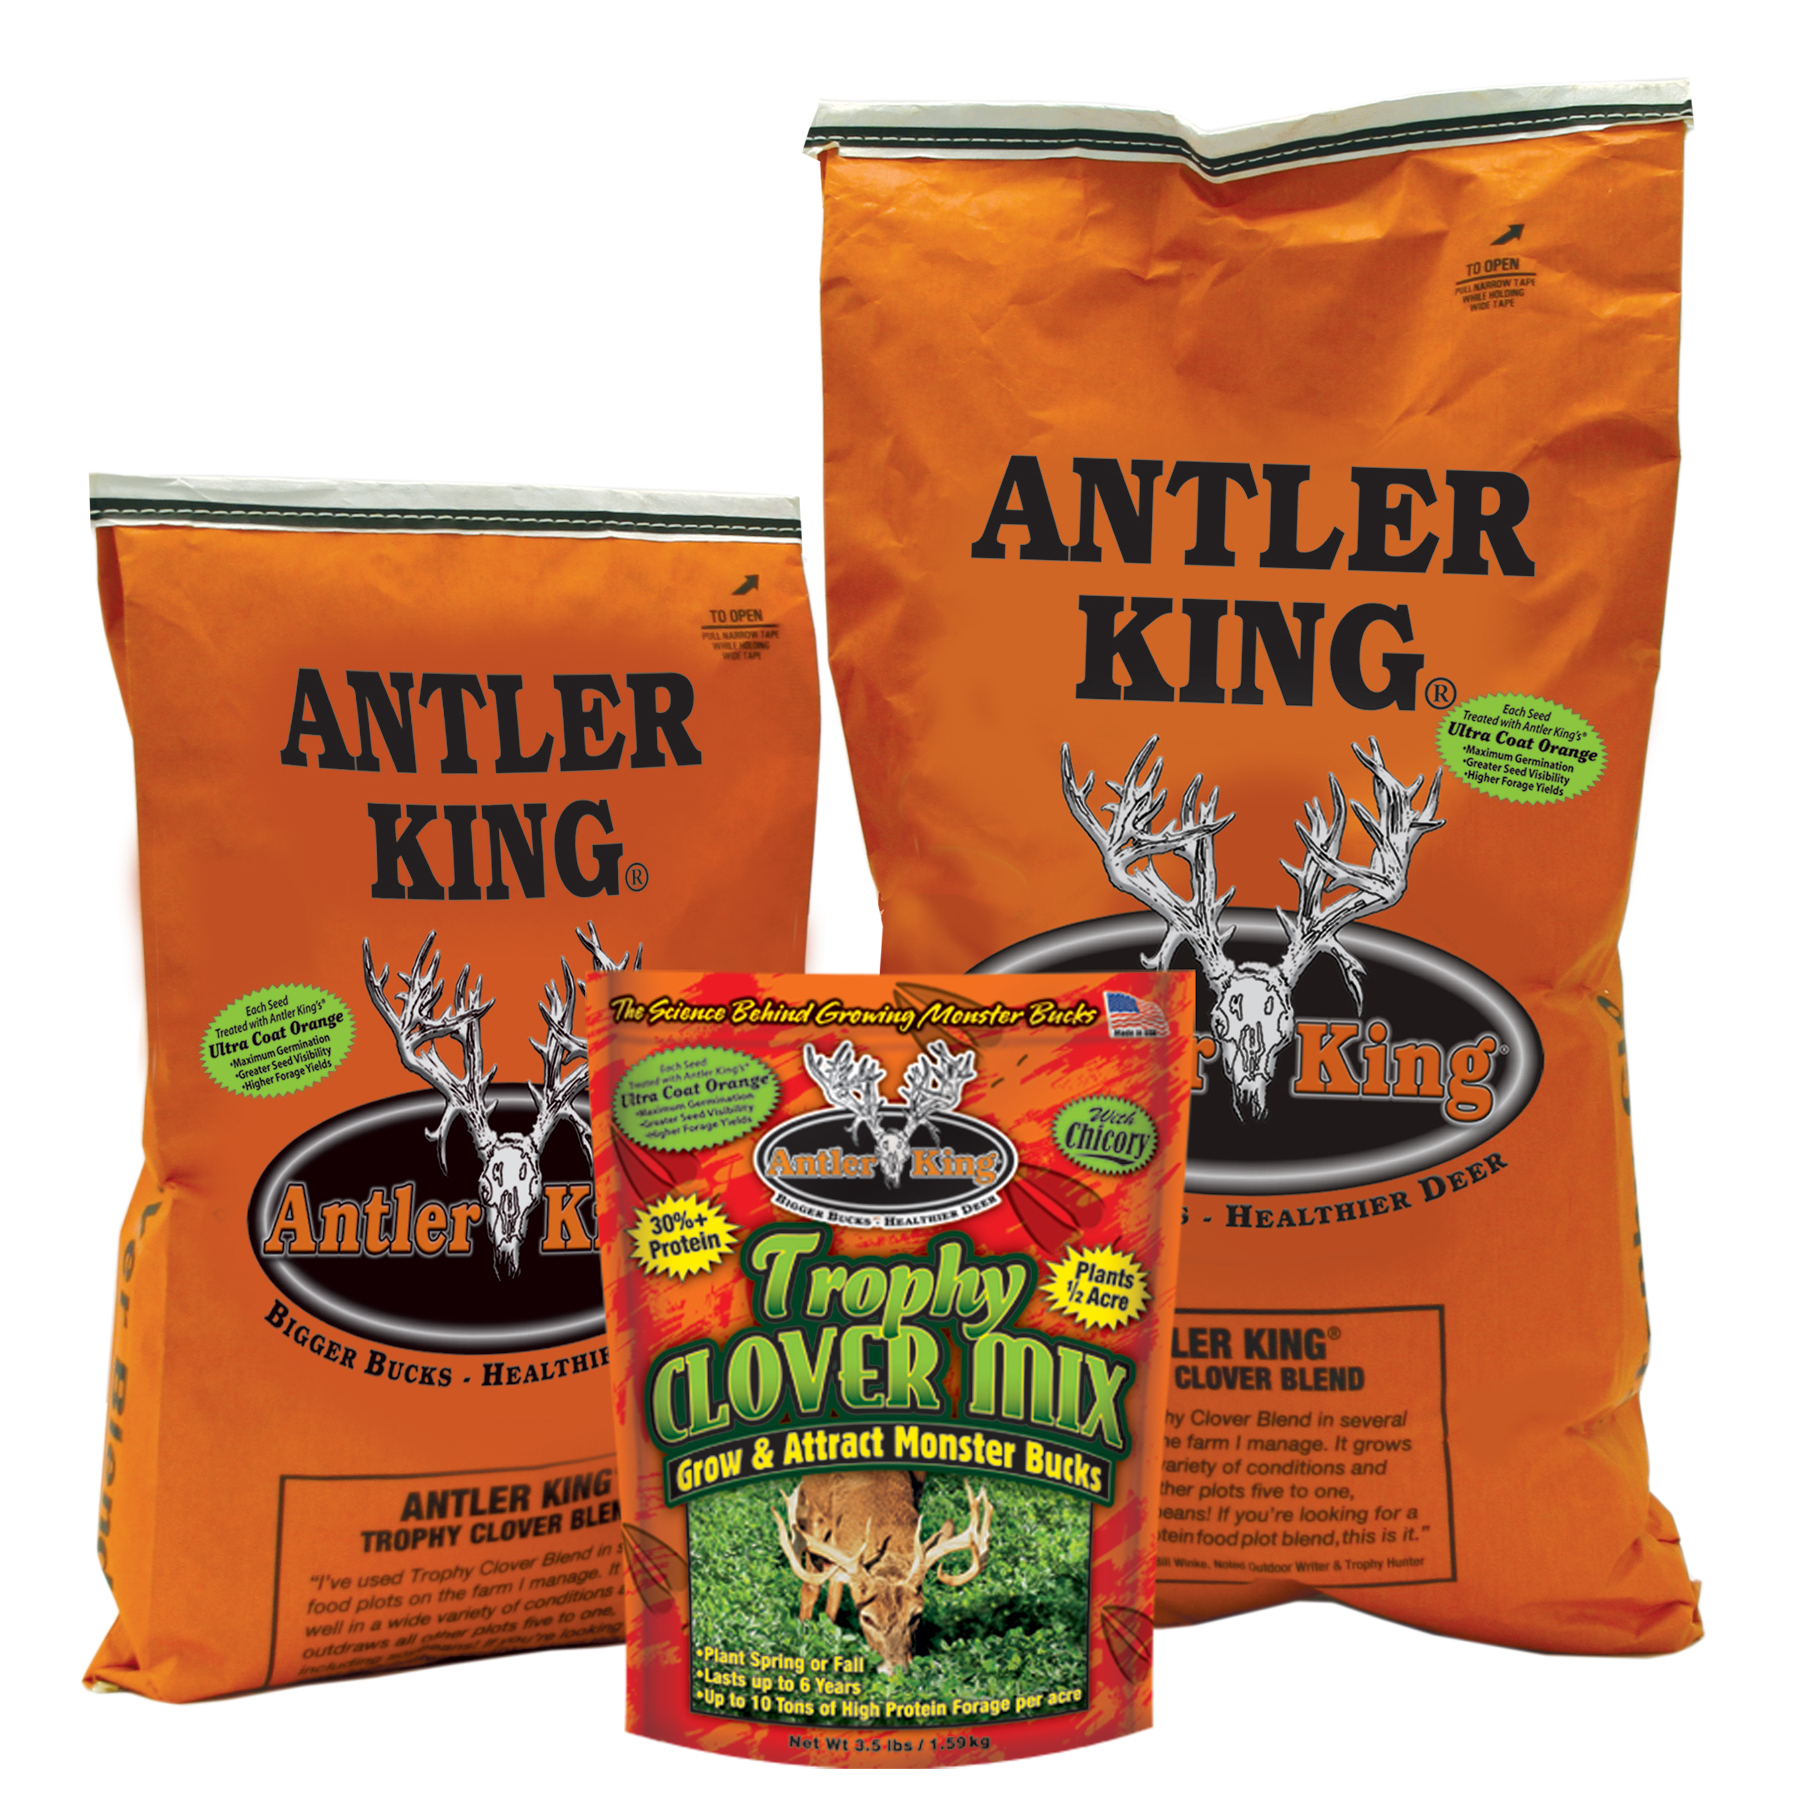 Antler King Trophy Clover Mix, 3.5 lbs. – Covers 1/2 Acre